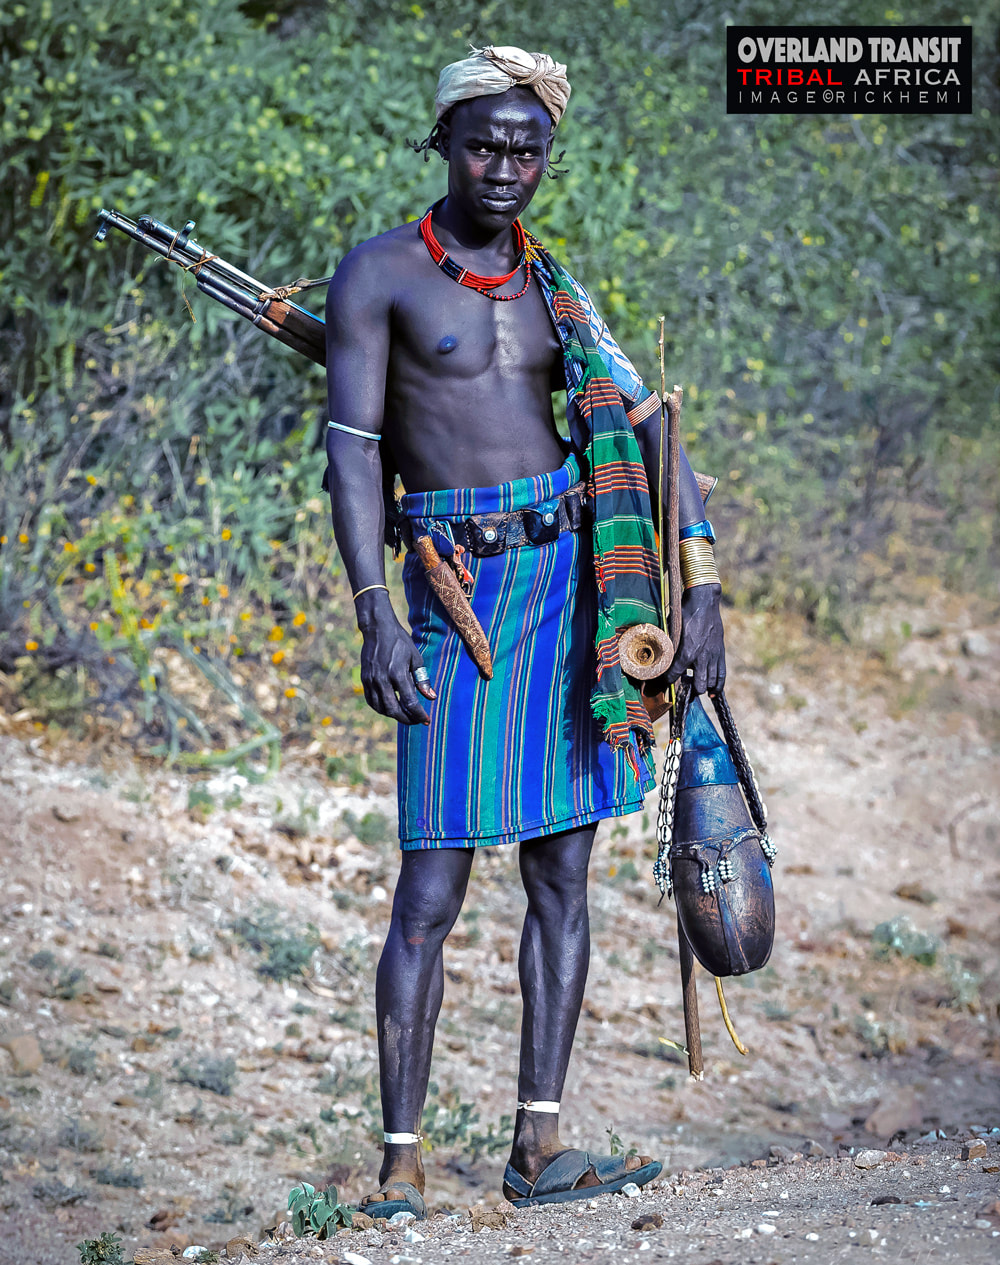 overland travel and transit Africa, solo travel Africa, tribal lands Africa, image by Rick Hemi